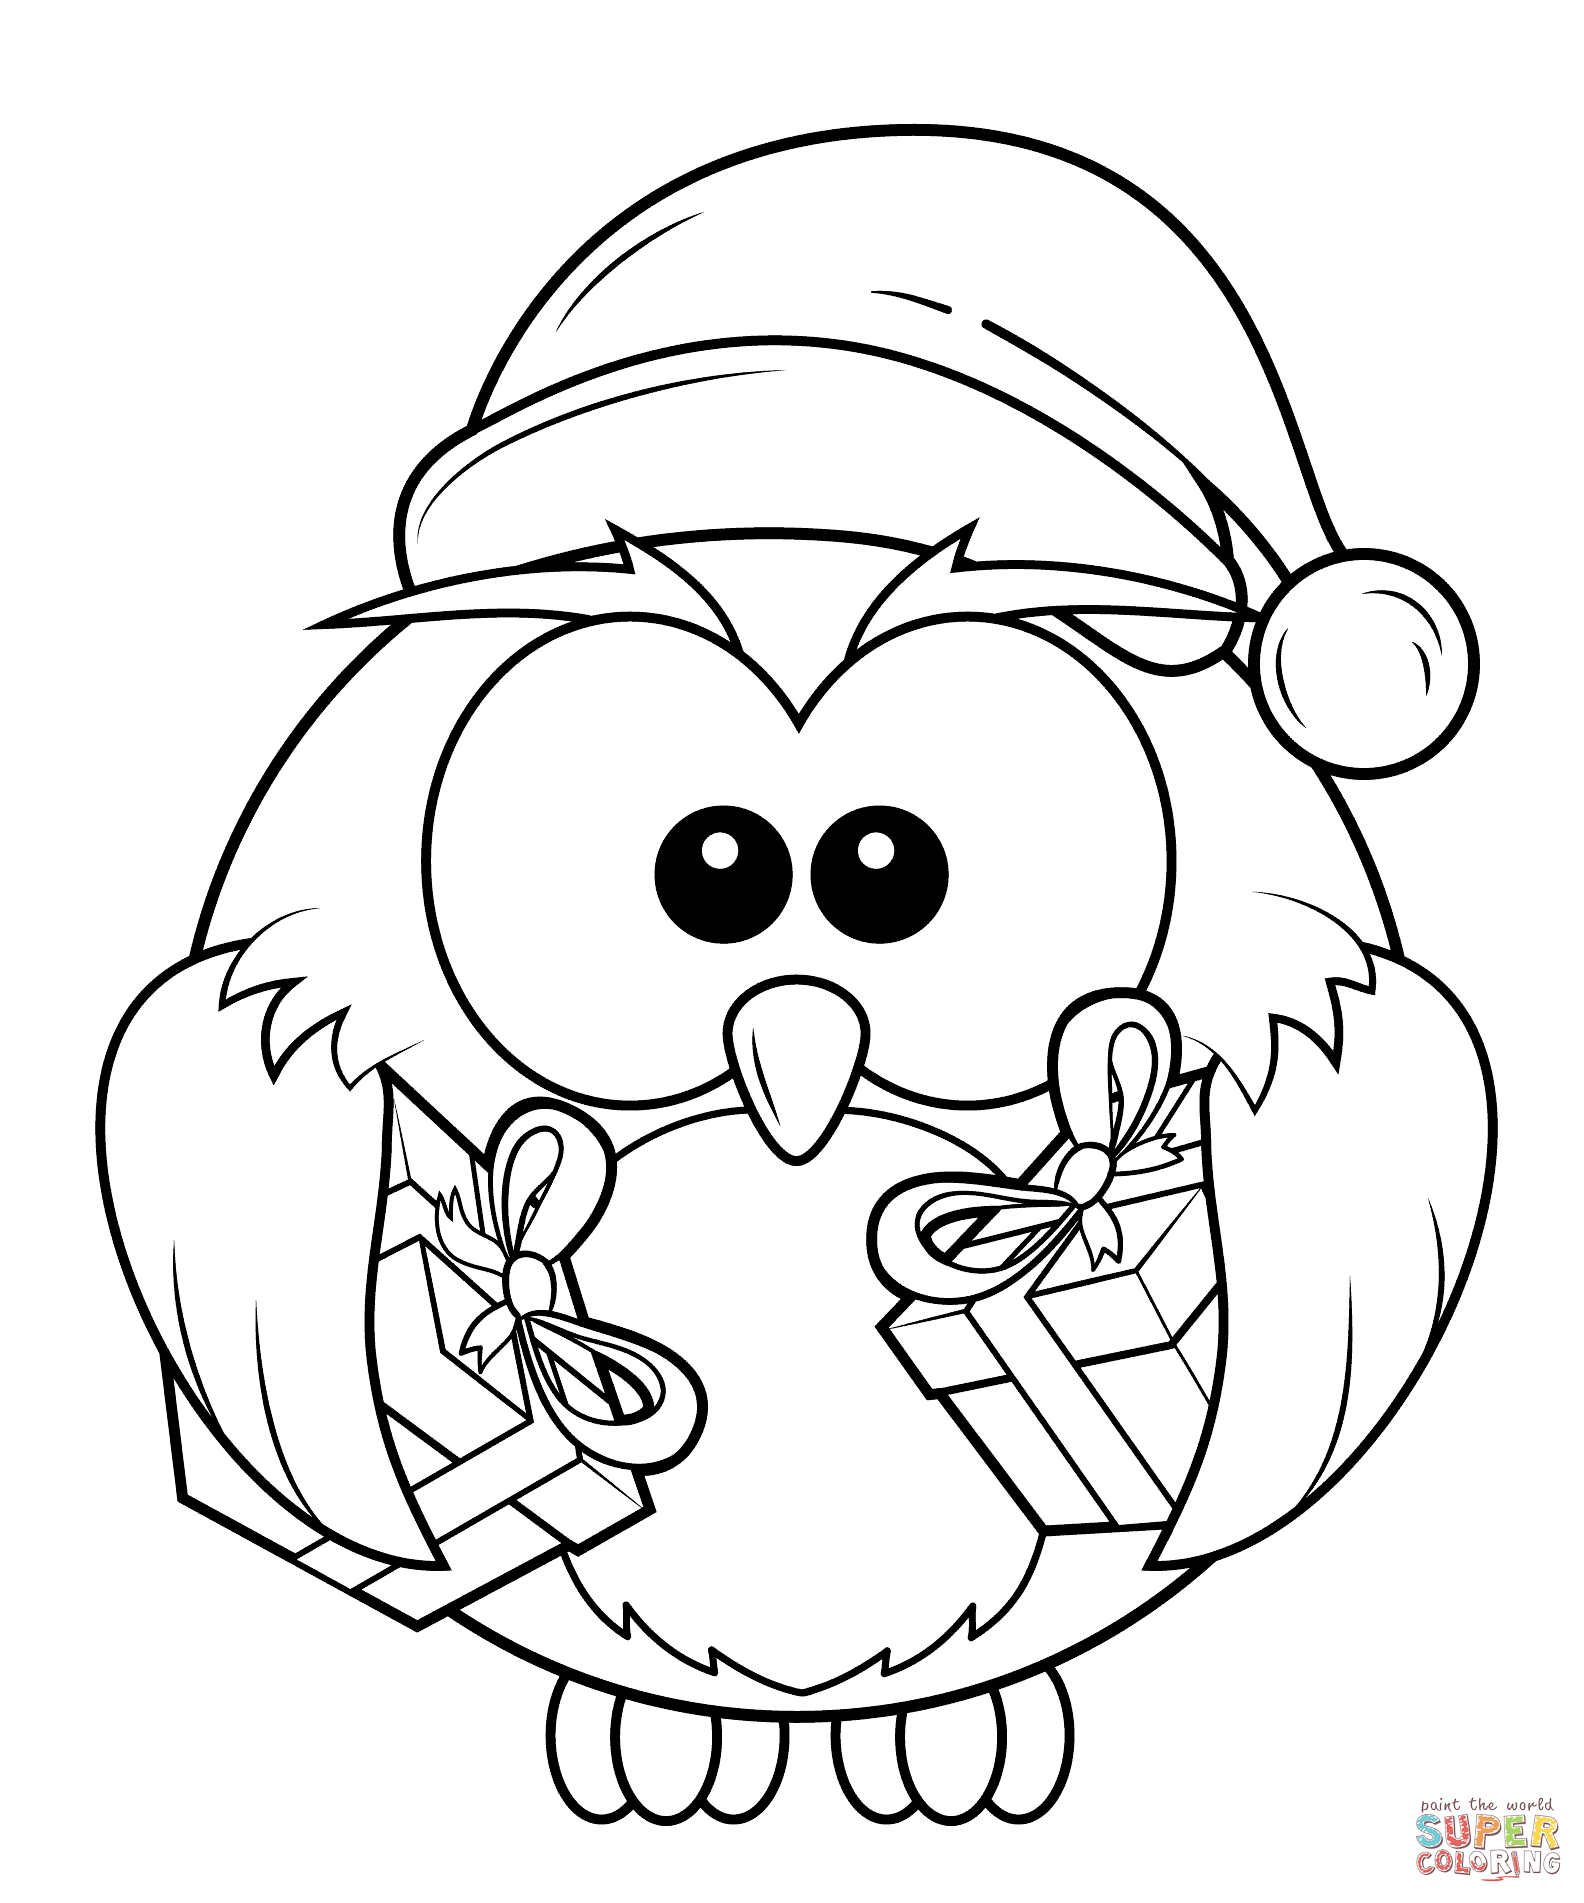 Owl Cartoon Coloring Pages At Getdrawings Com Free For Personal